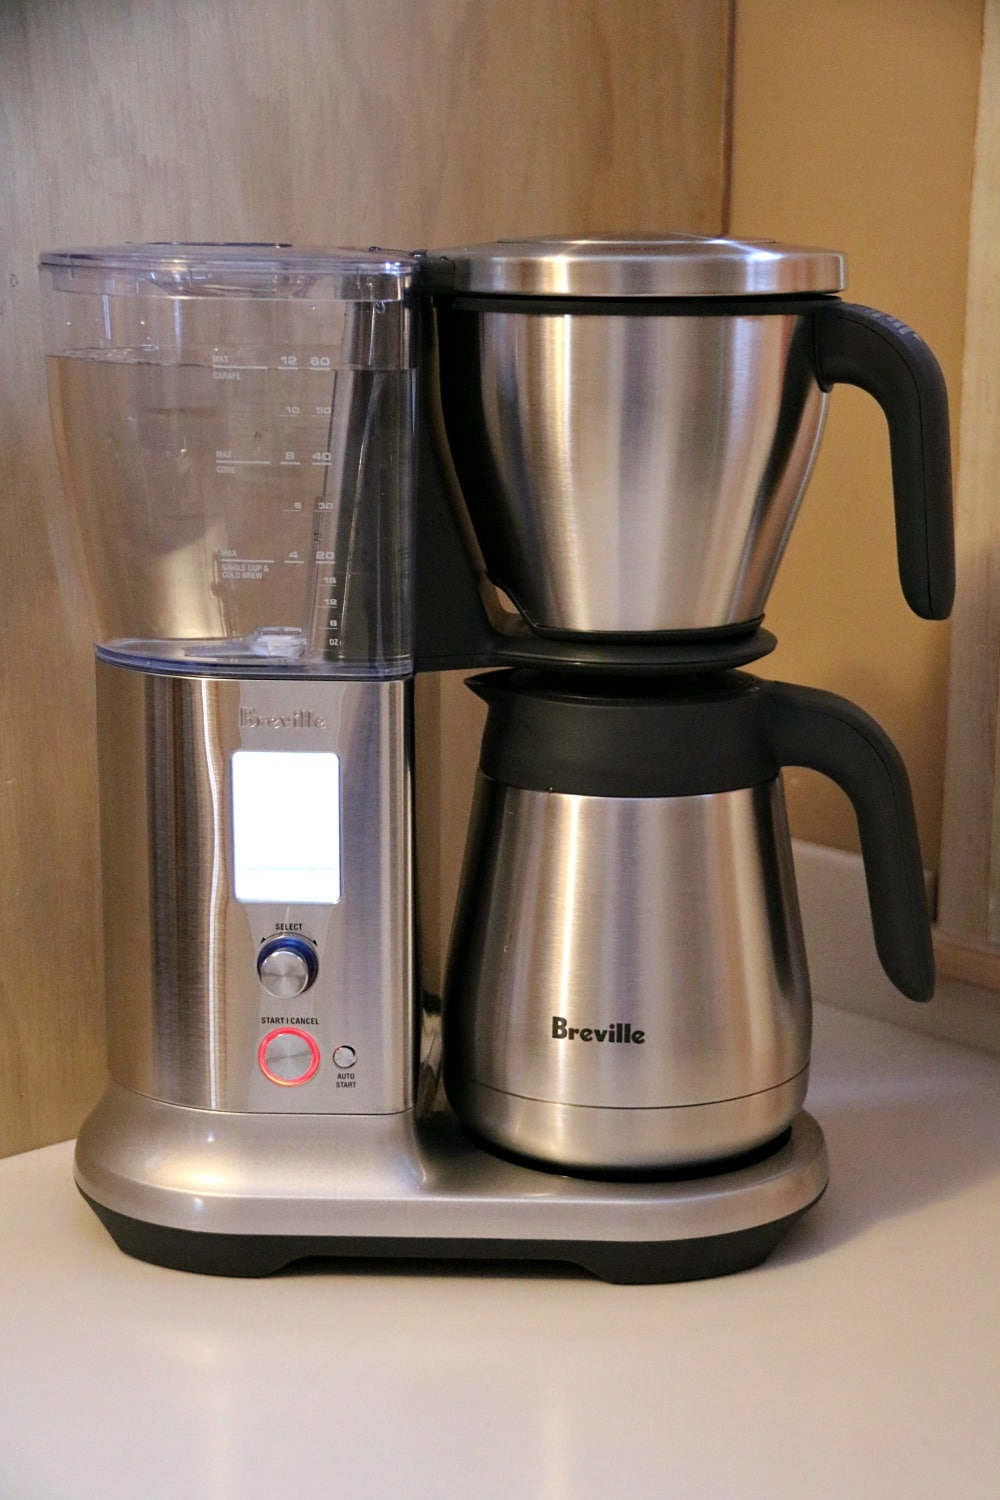 Breville Coffee Maker At The Bay : The Ultimate At Home Coffee Maker: The Breville Precision Brewer